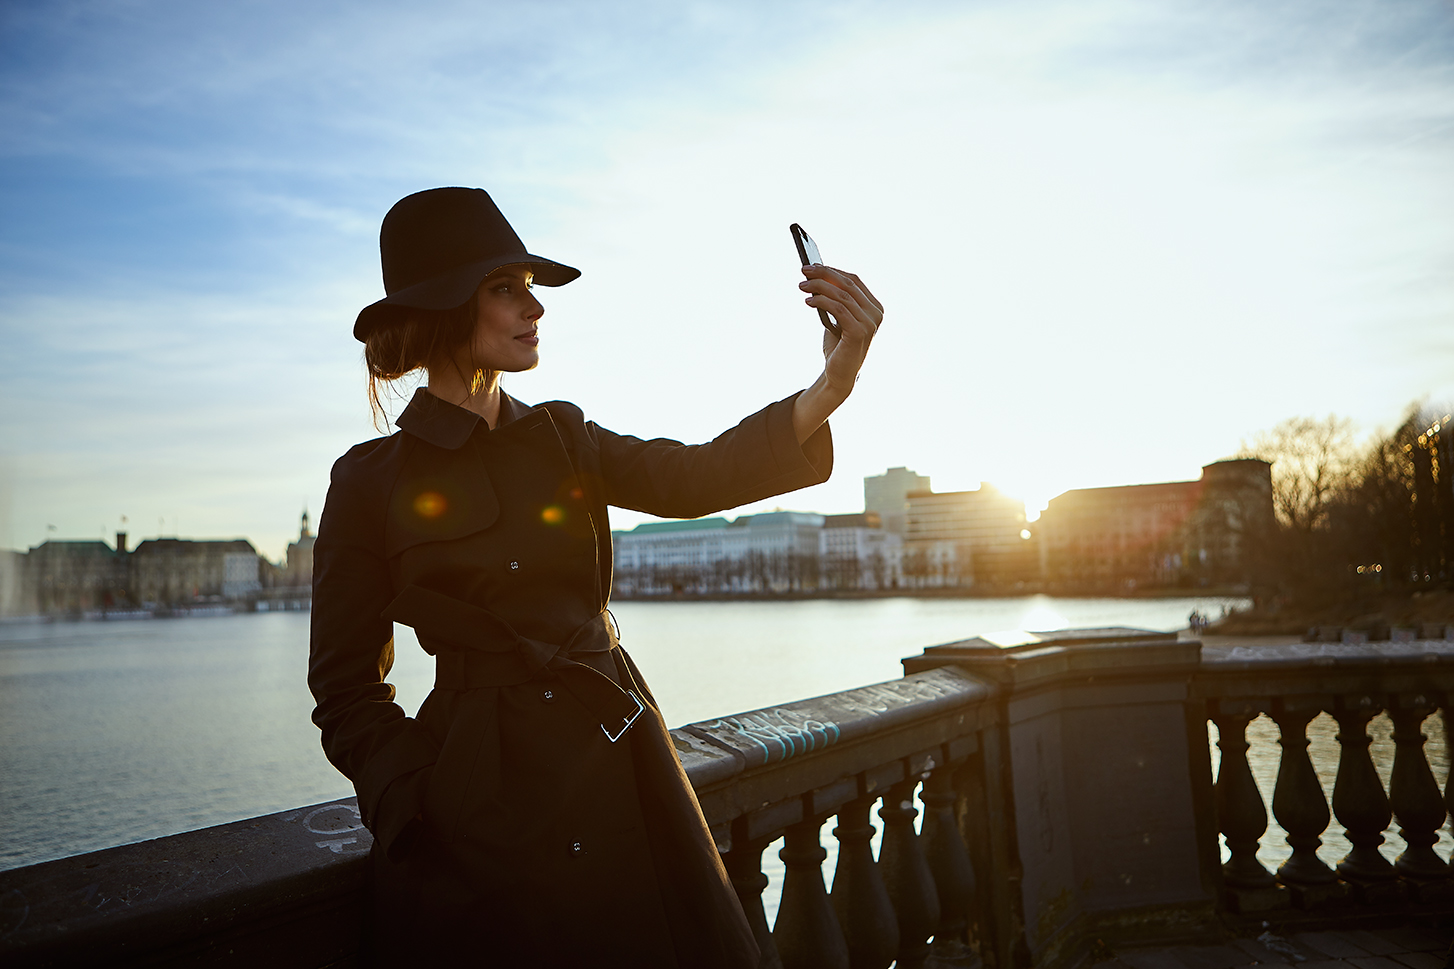 female model alster sunset selfi cap bridge